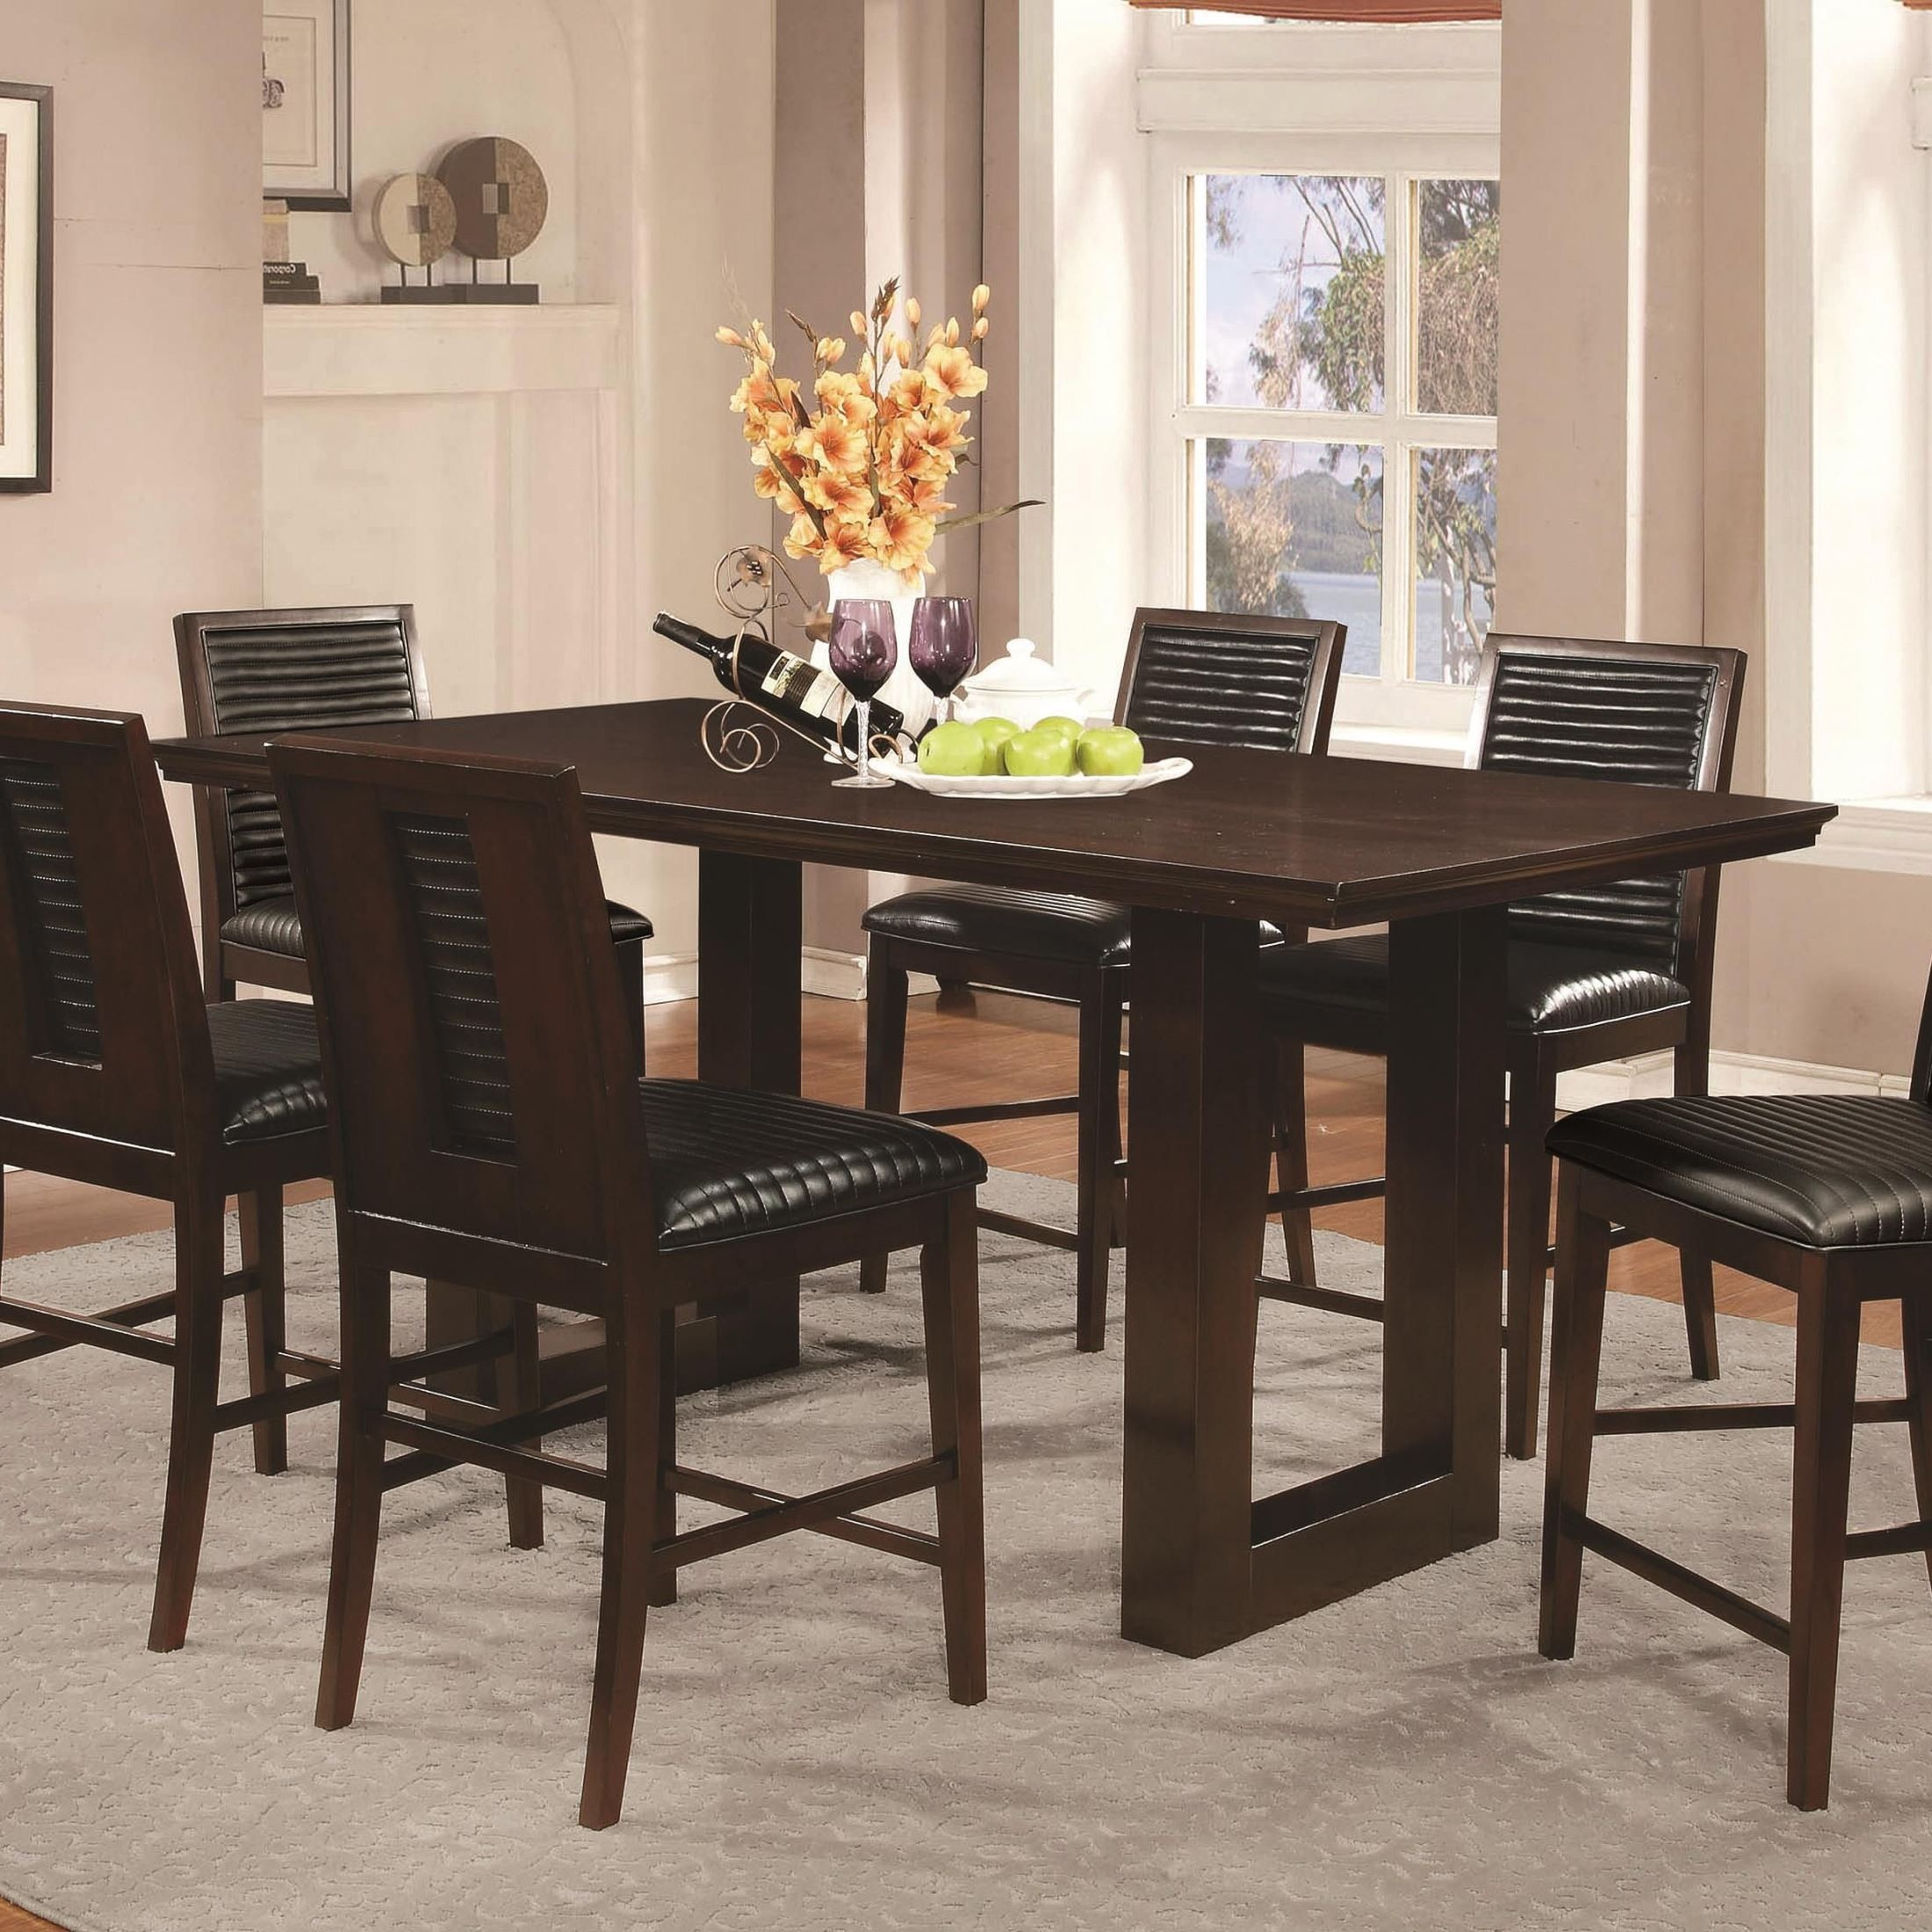 Counter Height Dining Tables: Chester Rectangular Pedestal Counter Height Table From